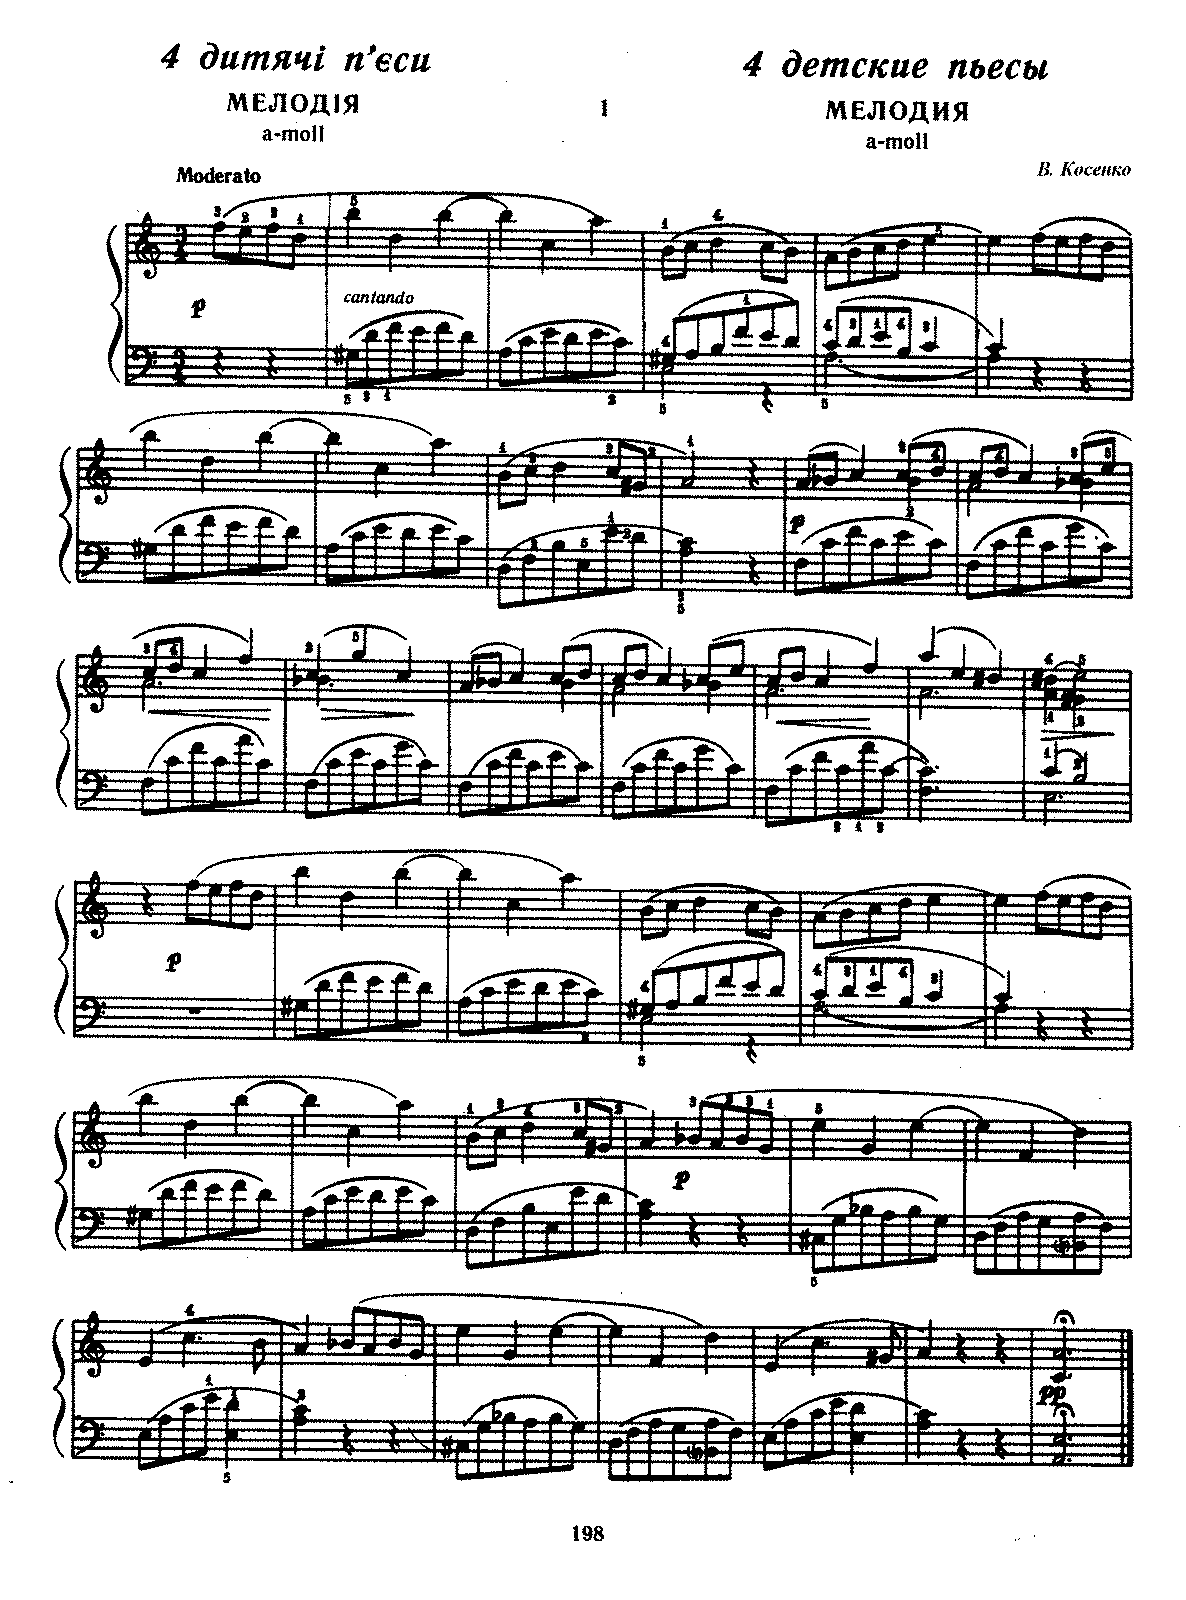 PMLP589252-kosenko 4pieces.pdf